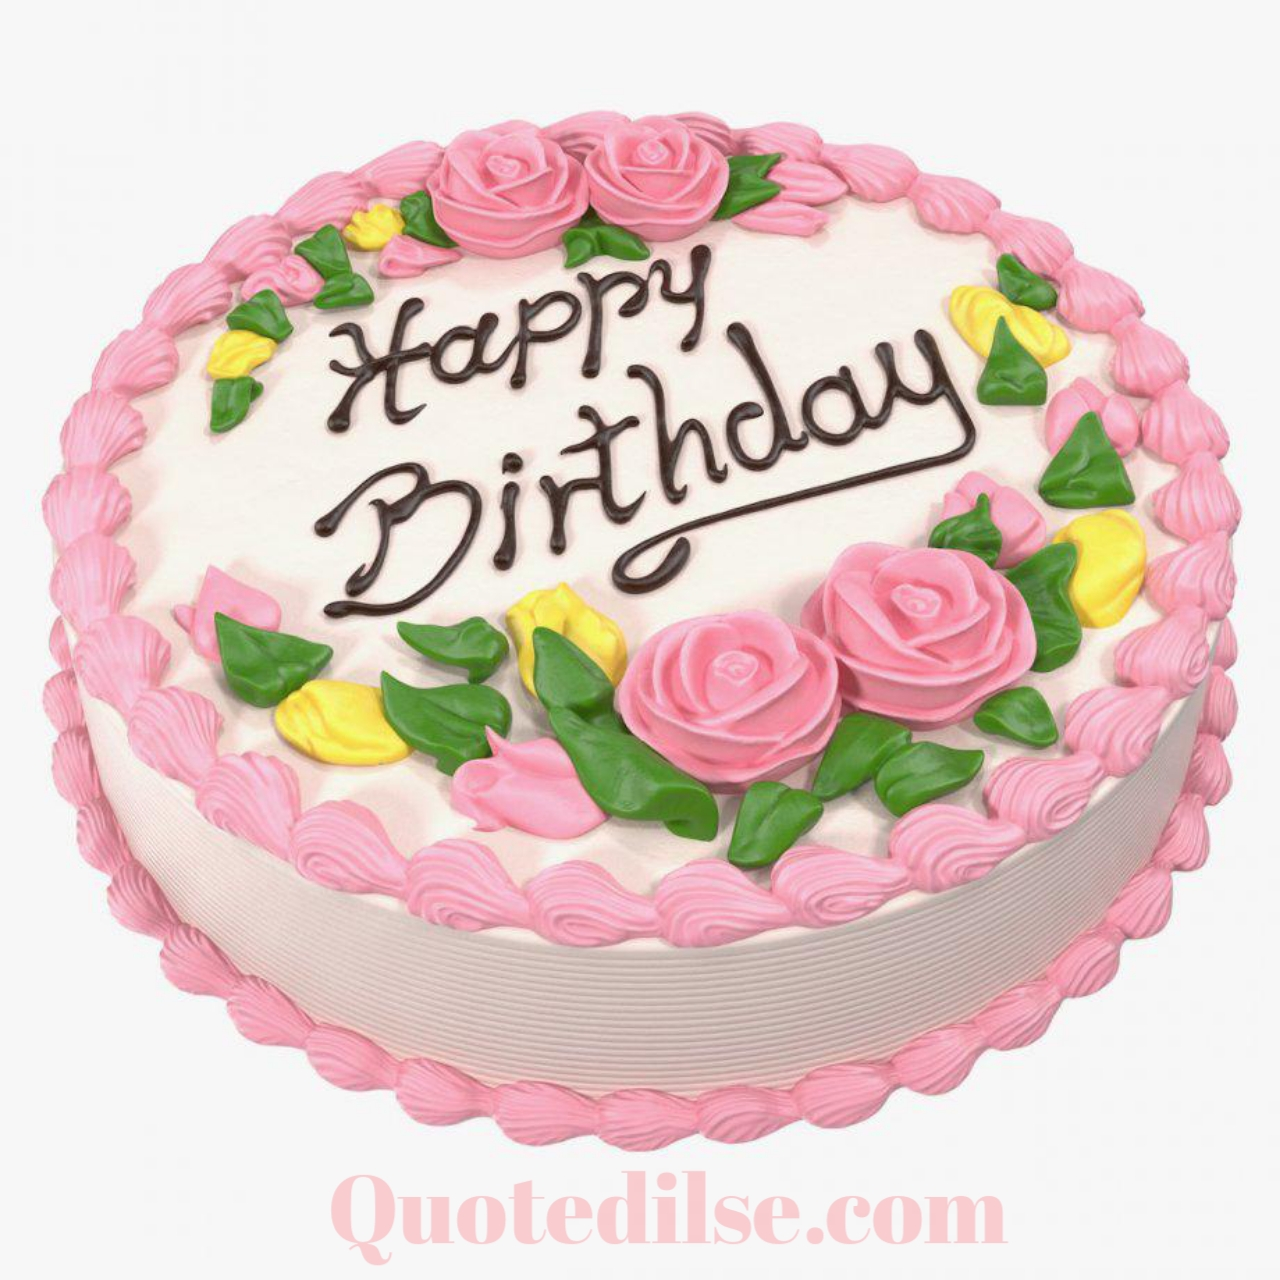 Remarkable Birthday Cake Images With Quotes Funny Birthday Cards Online Chimdamsfinfo